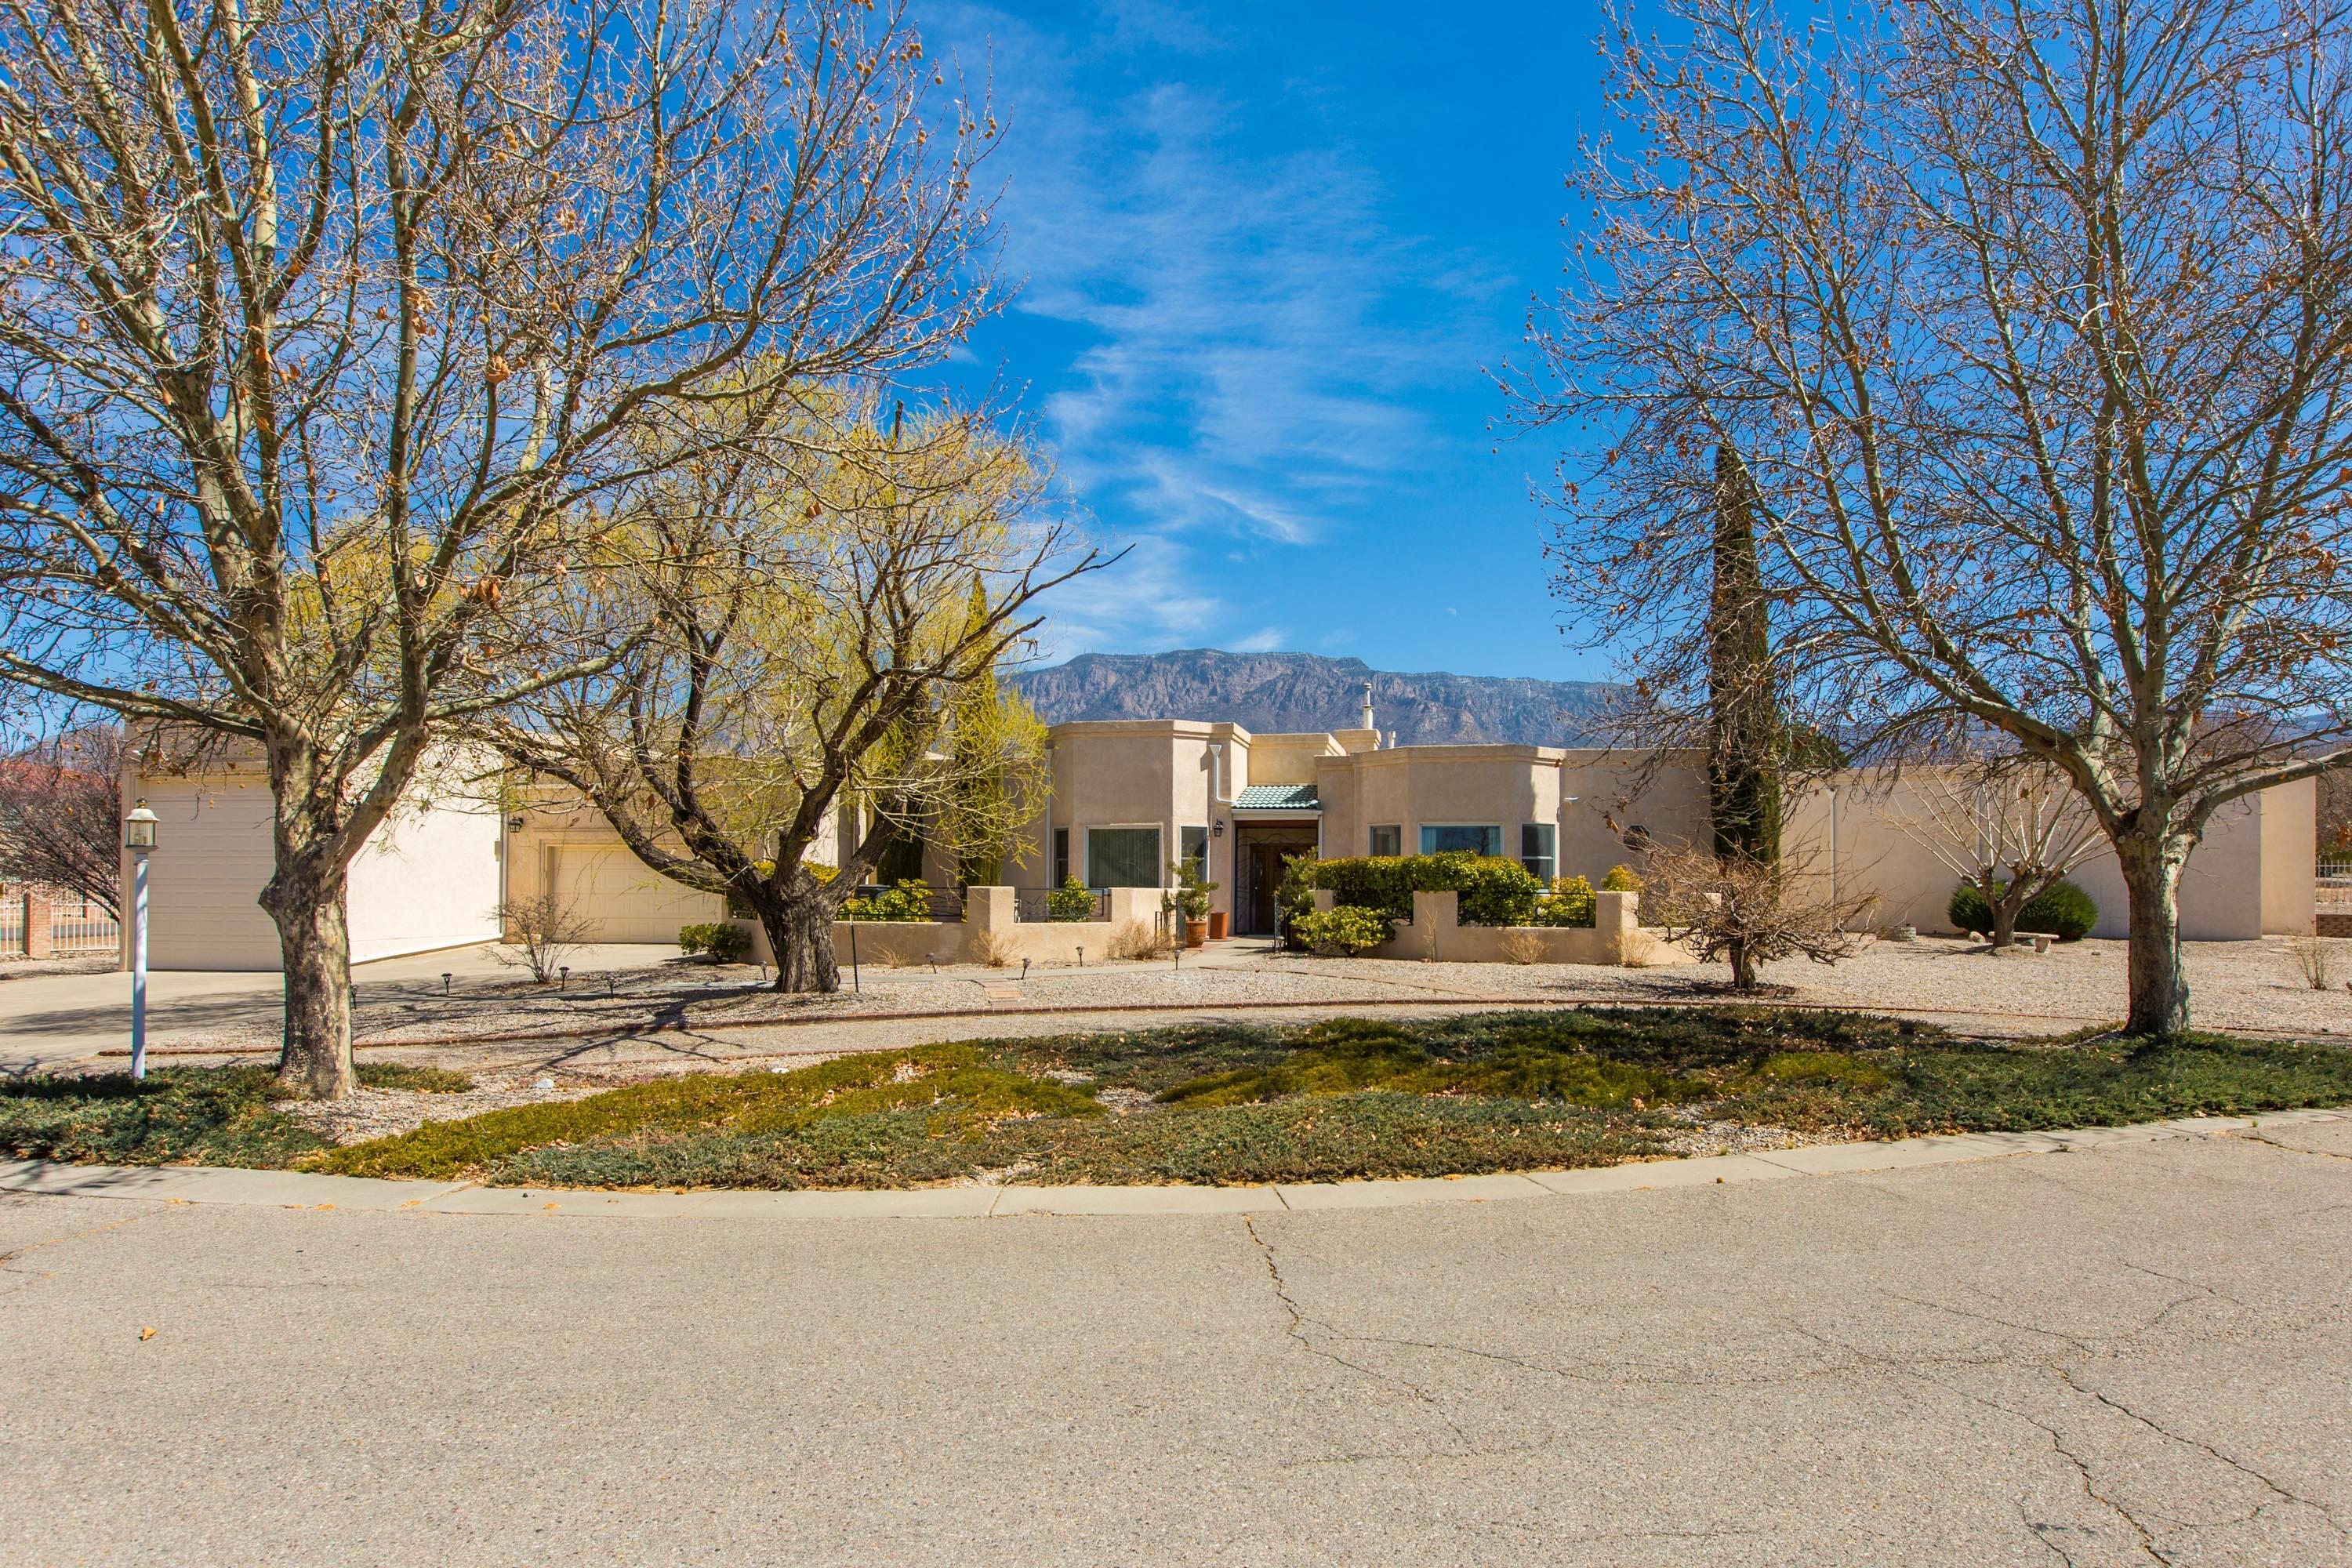 A must see in this gated North Albuquerque Acres neighborhood! Price to sell fast, this one story estate sits on a large .89 acre parcel with incredible Sandia Mountain views. Enjoy views from most areas of the home! One sprawling level of updated, airy and bright square footage includes a nice open concept floor plan with kitchen open to the great room. Sunroom is heated and has ample space for (482sqt) for a game room, entertainment room, etc. Two spacious master bedrooms, additional bedrooms, (2) office spaces and workshop and excersise room! The garage could fit 3-4 cars in tandem in the RV garage, with two additional garage spaces. Abundant storage space thougtout! Refrigerated air, central heating, new lighting, new appliances, granite countertops,  Low maintenace yard.